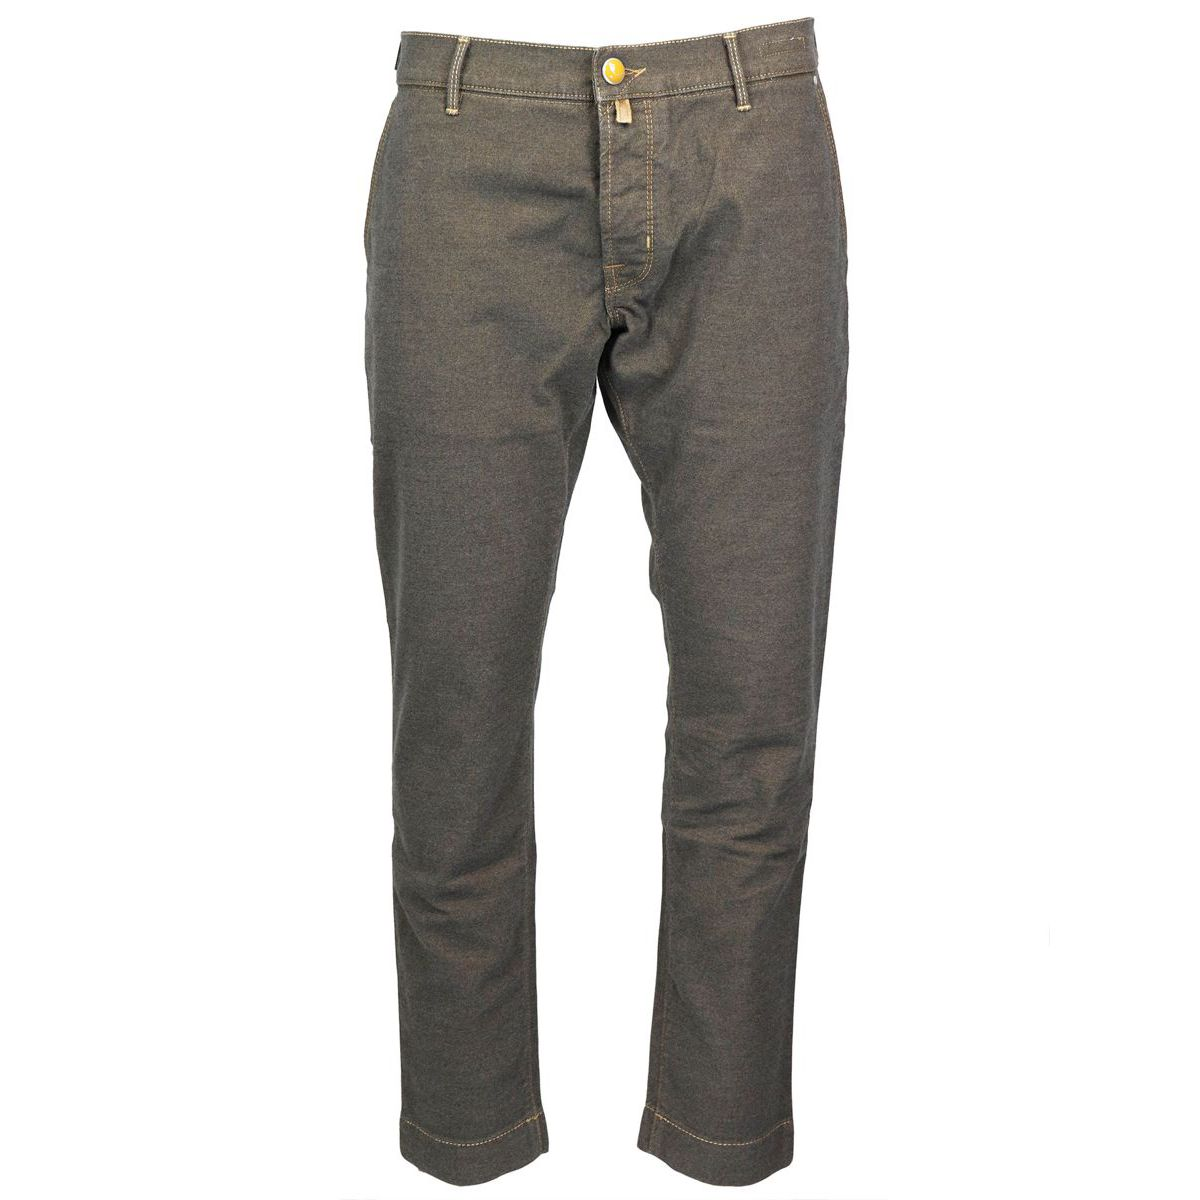 Elasticated trousers pocket america J676 COMF 01719 Dijon Jacob Cohen